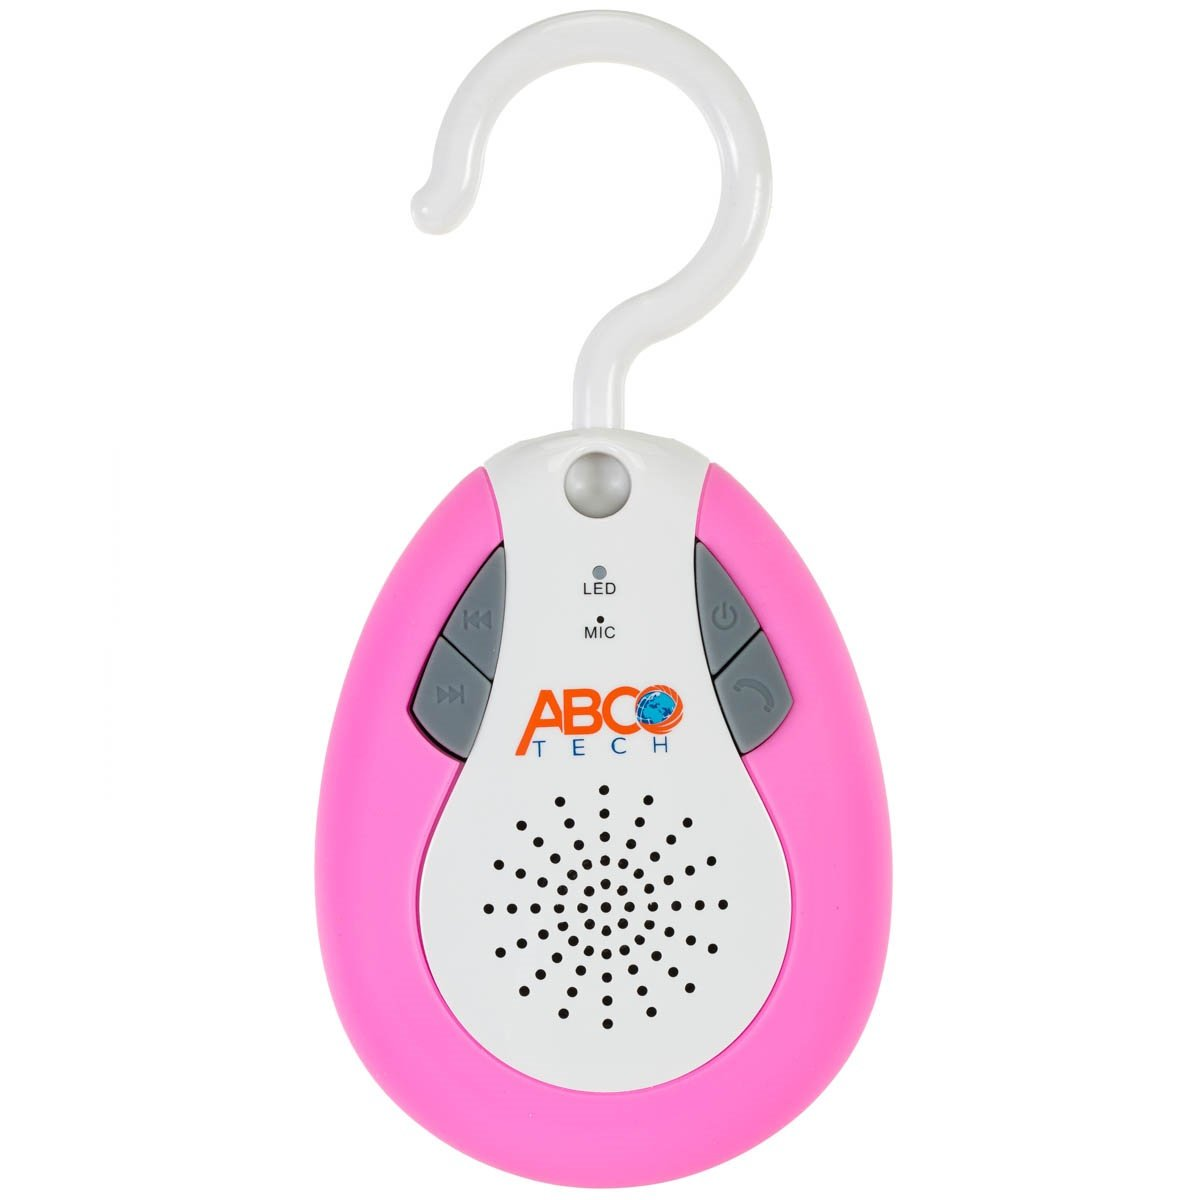 Abco Tech Water Resistant Wireless FM Radio Bluetooth Shower Speaker with Hook Handle and Hands-Free Speakerphone, Pink YNF Trading Inc. Hook Speaker Black